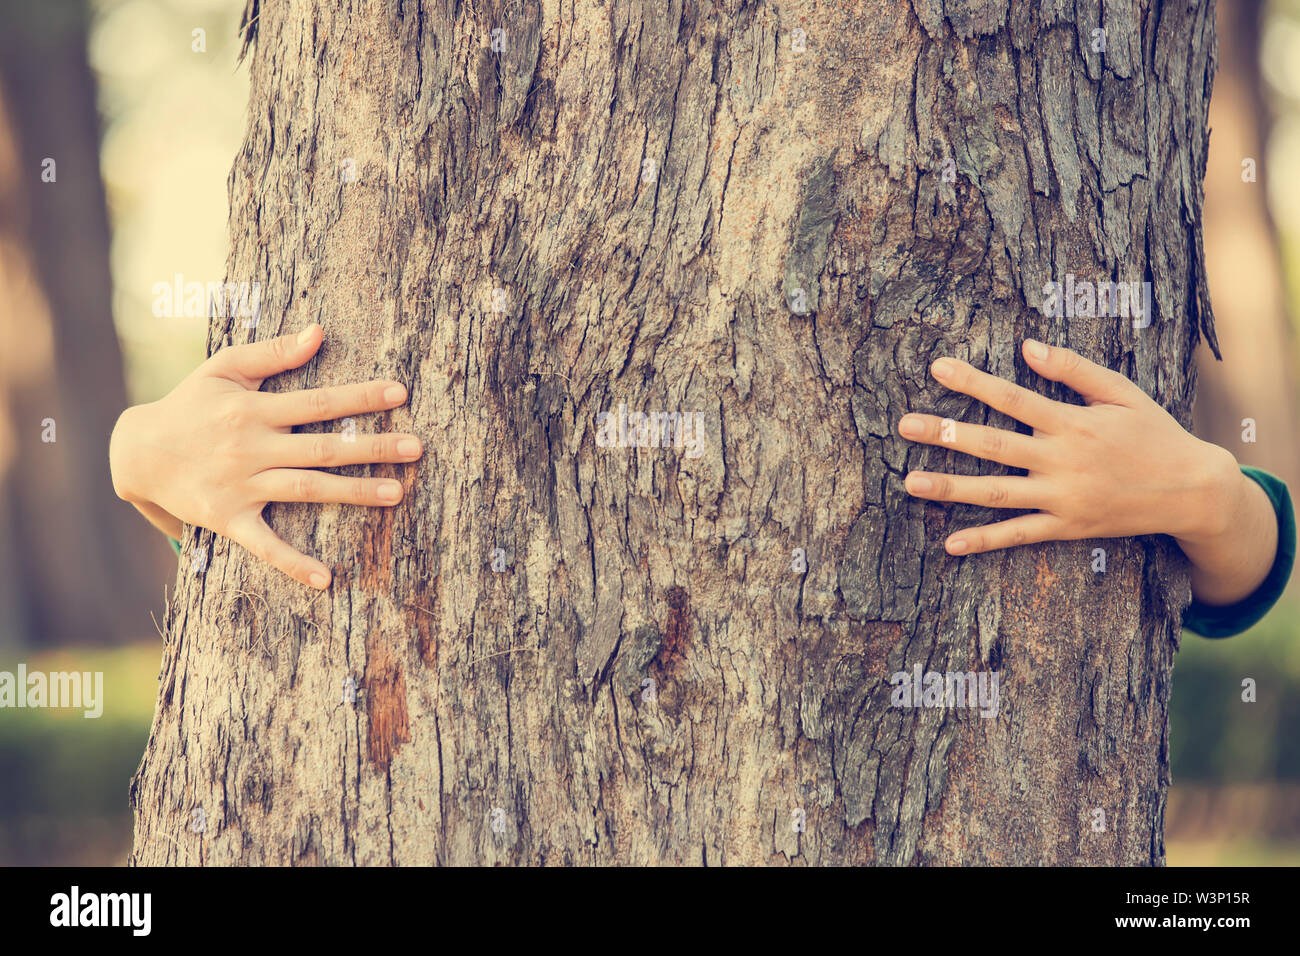 Close-up of hands hugging tree Photo Stock